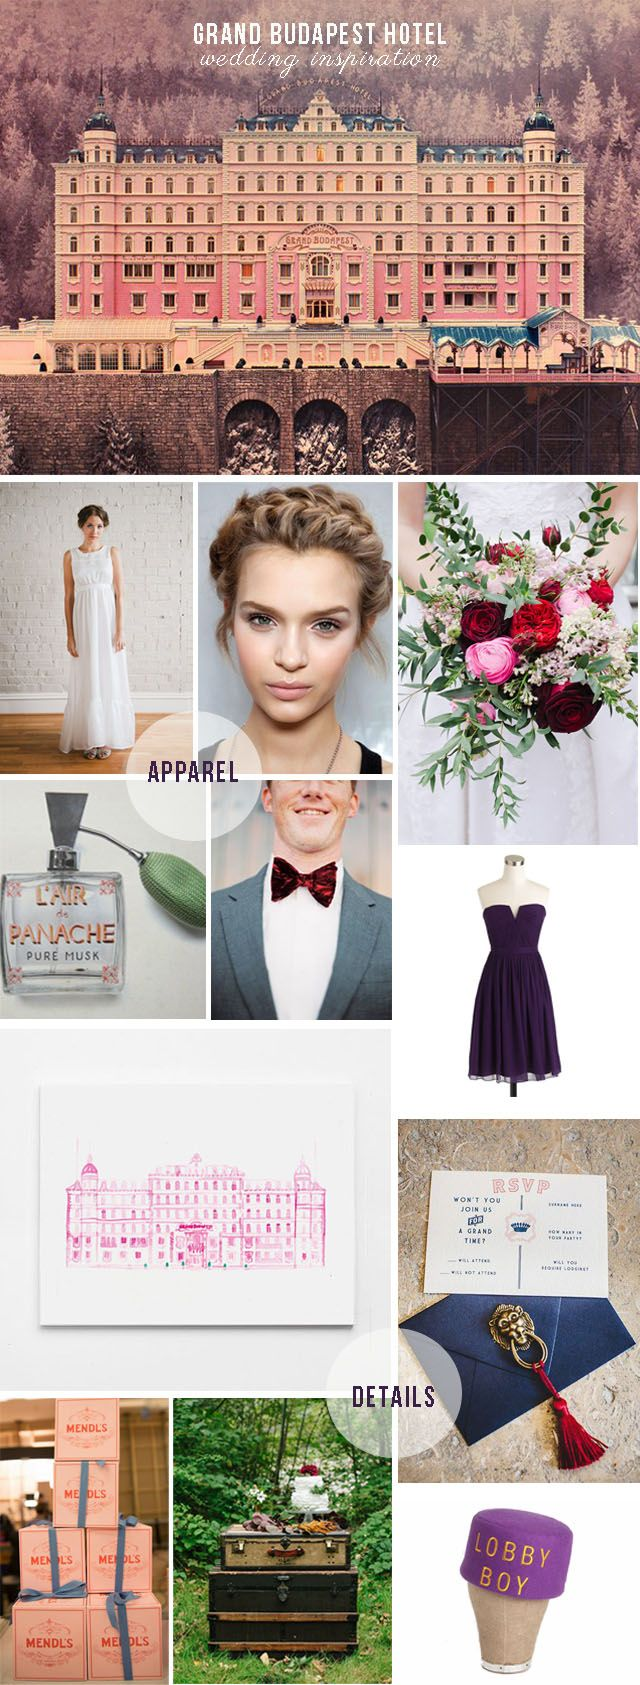 I saw Grand Budapest Hotel back in late winter and have wanted to do a wedding inspiration collage ever since. As usual, the movie had the Wes Anderson staples of vibrant colors and picture perfe...